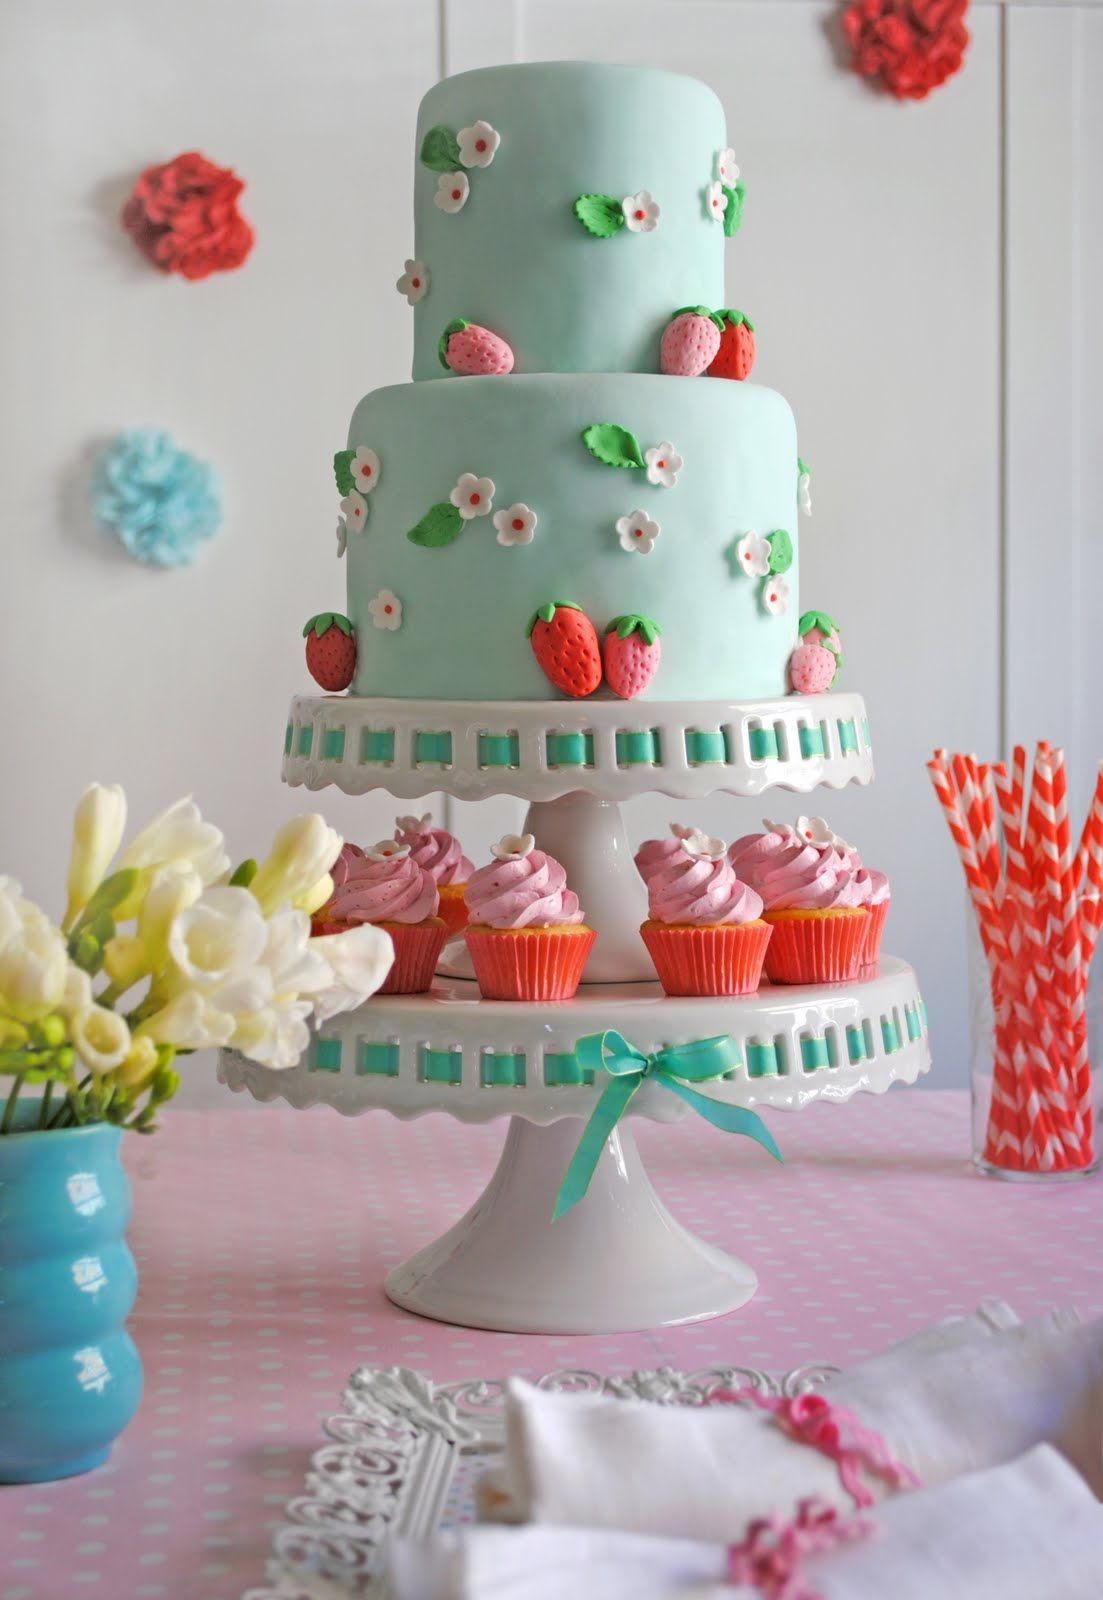 In law in addition free pink birthday cake in addition bake shop party - Pink And Blue Strawberry Birthday Party